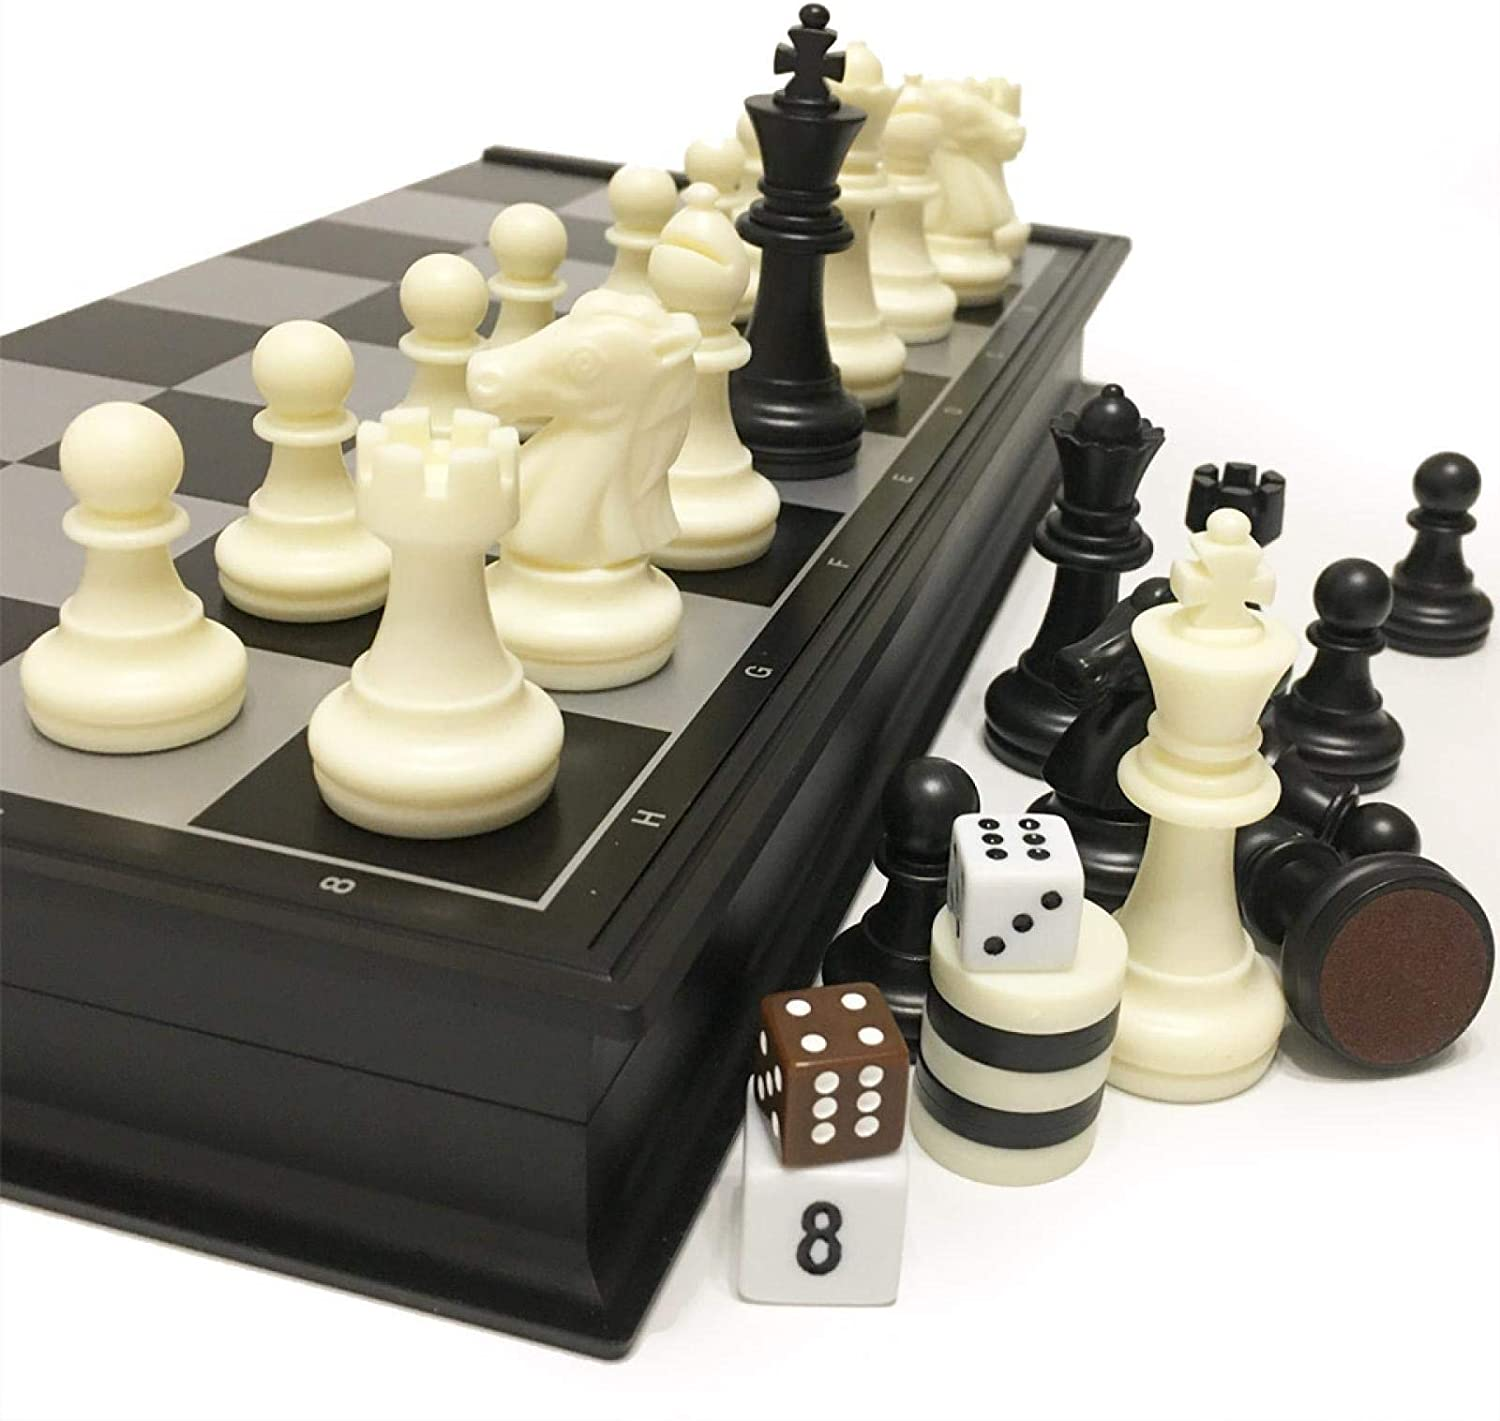 MAGRF Chess Max 58% OFF Set, Board Back and Discount mail order Checkers Set,Chess